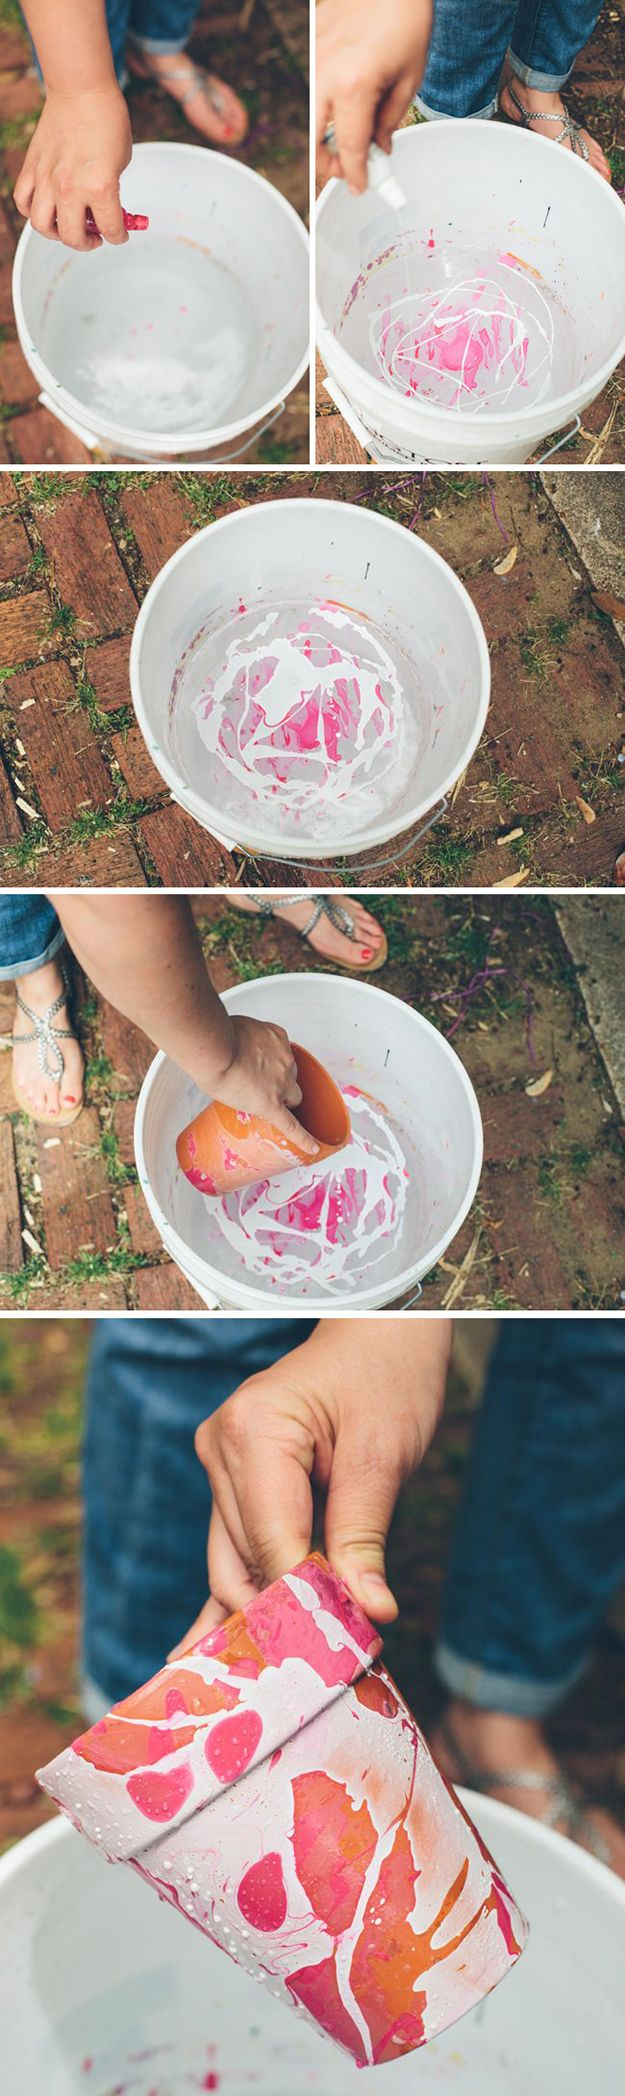 Nail polish Marbled Pot | Give your friends this awesome flower pot that you DIY'd yourself. All you need is a little nail polish and voila! #DiyReady www.diyready.com